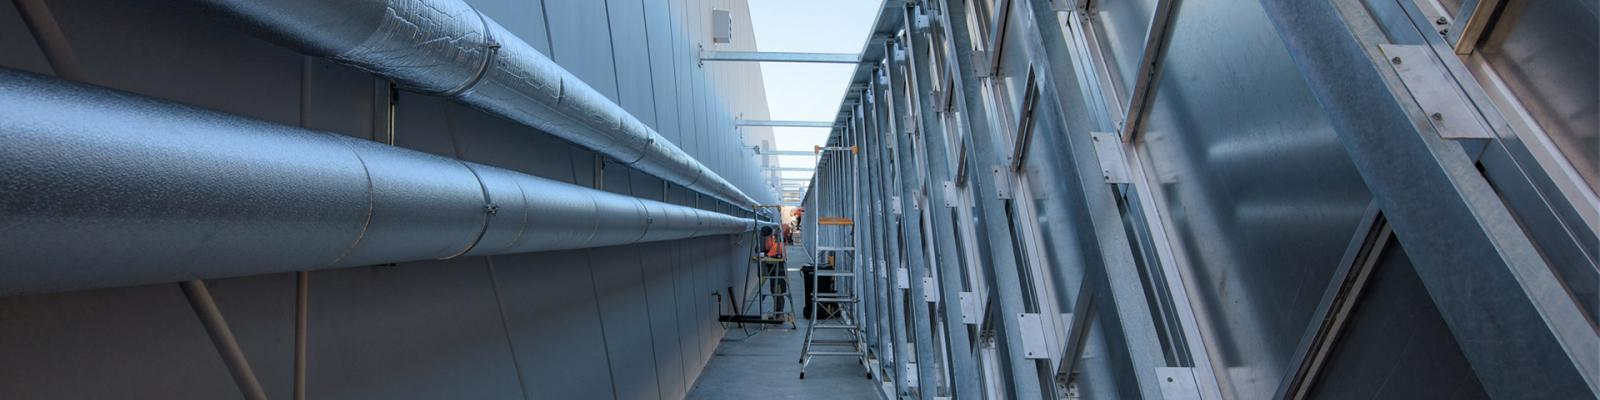 iSeek Data Centre Stage 2 Practical Completion Brisbane Airport  2020